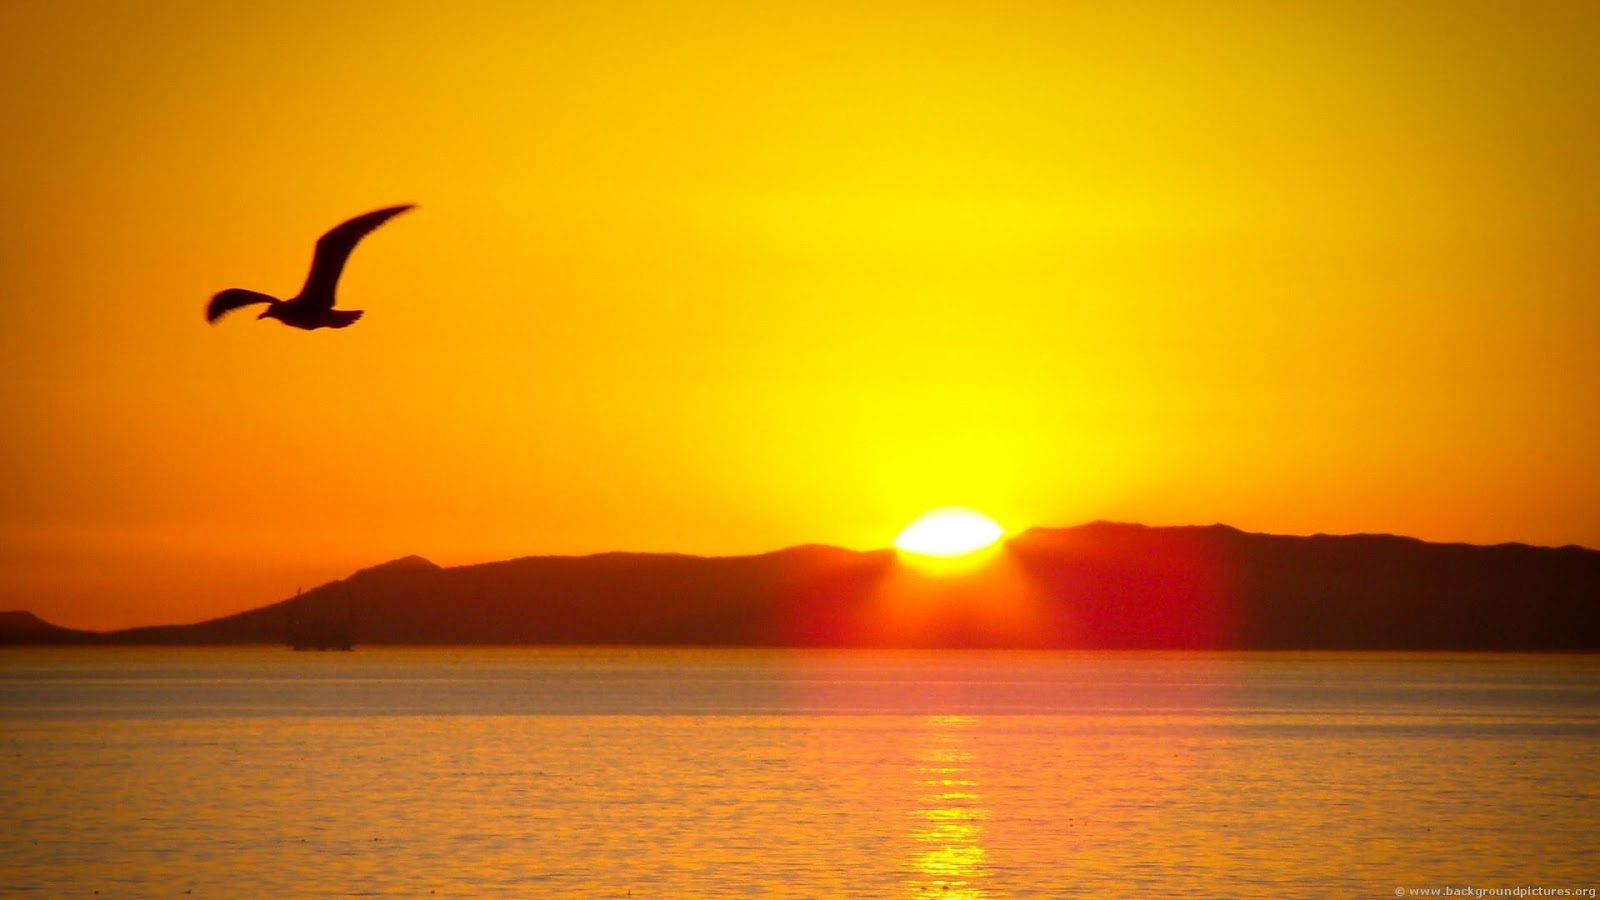 Top   Wallpaper Horse Sunrise - sunrise%2Bwallpapers%2BHD%2B2  Perfect Image Reference_295434.jpg